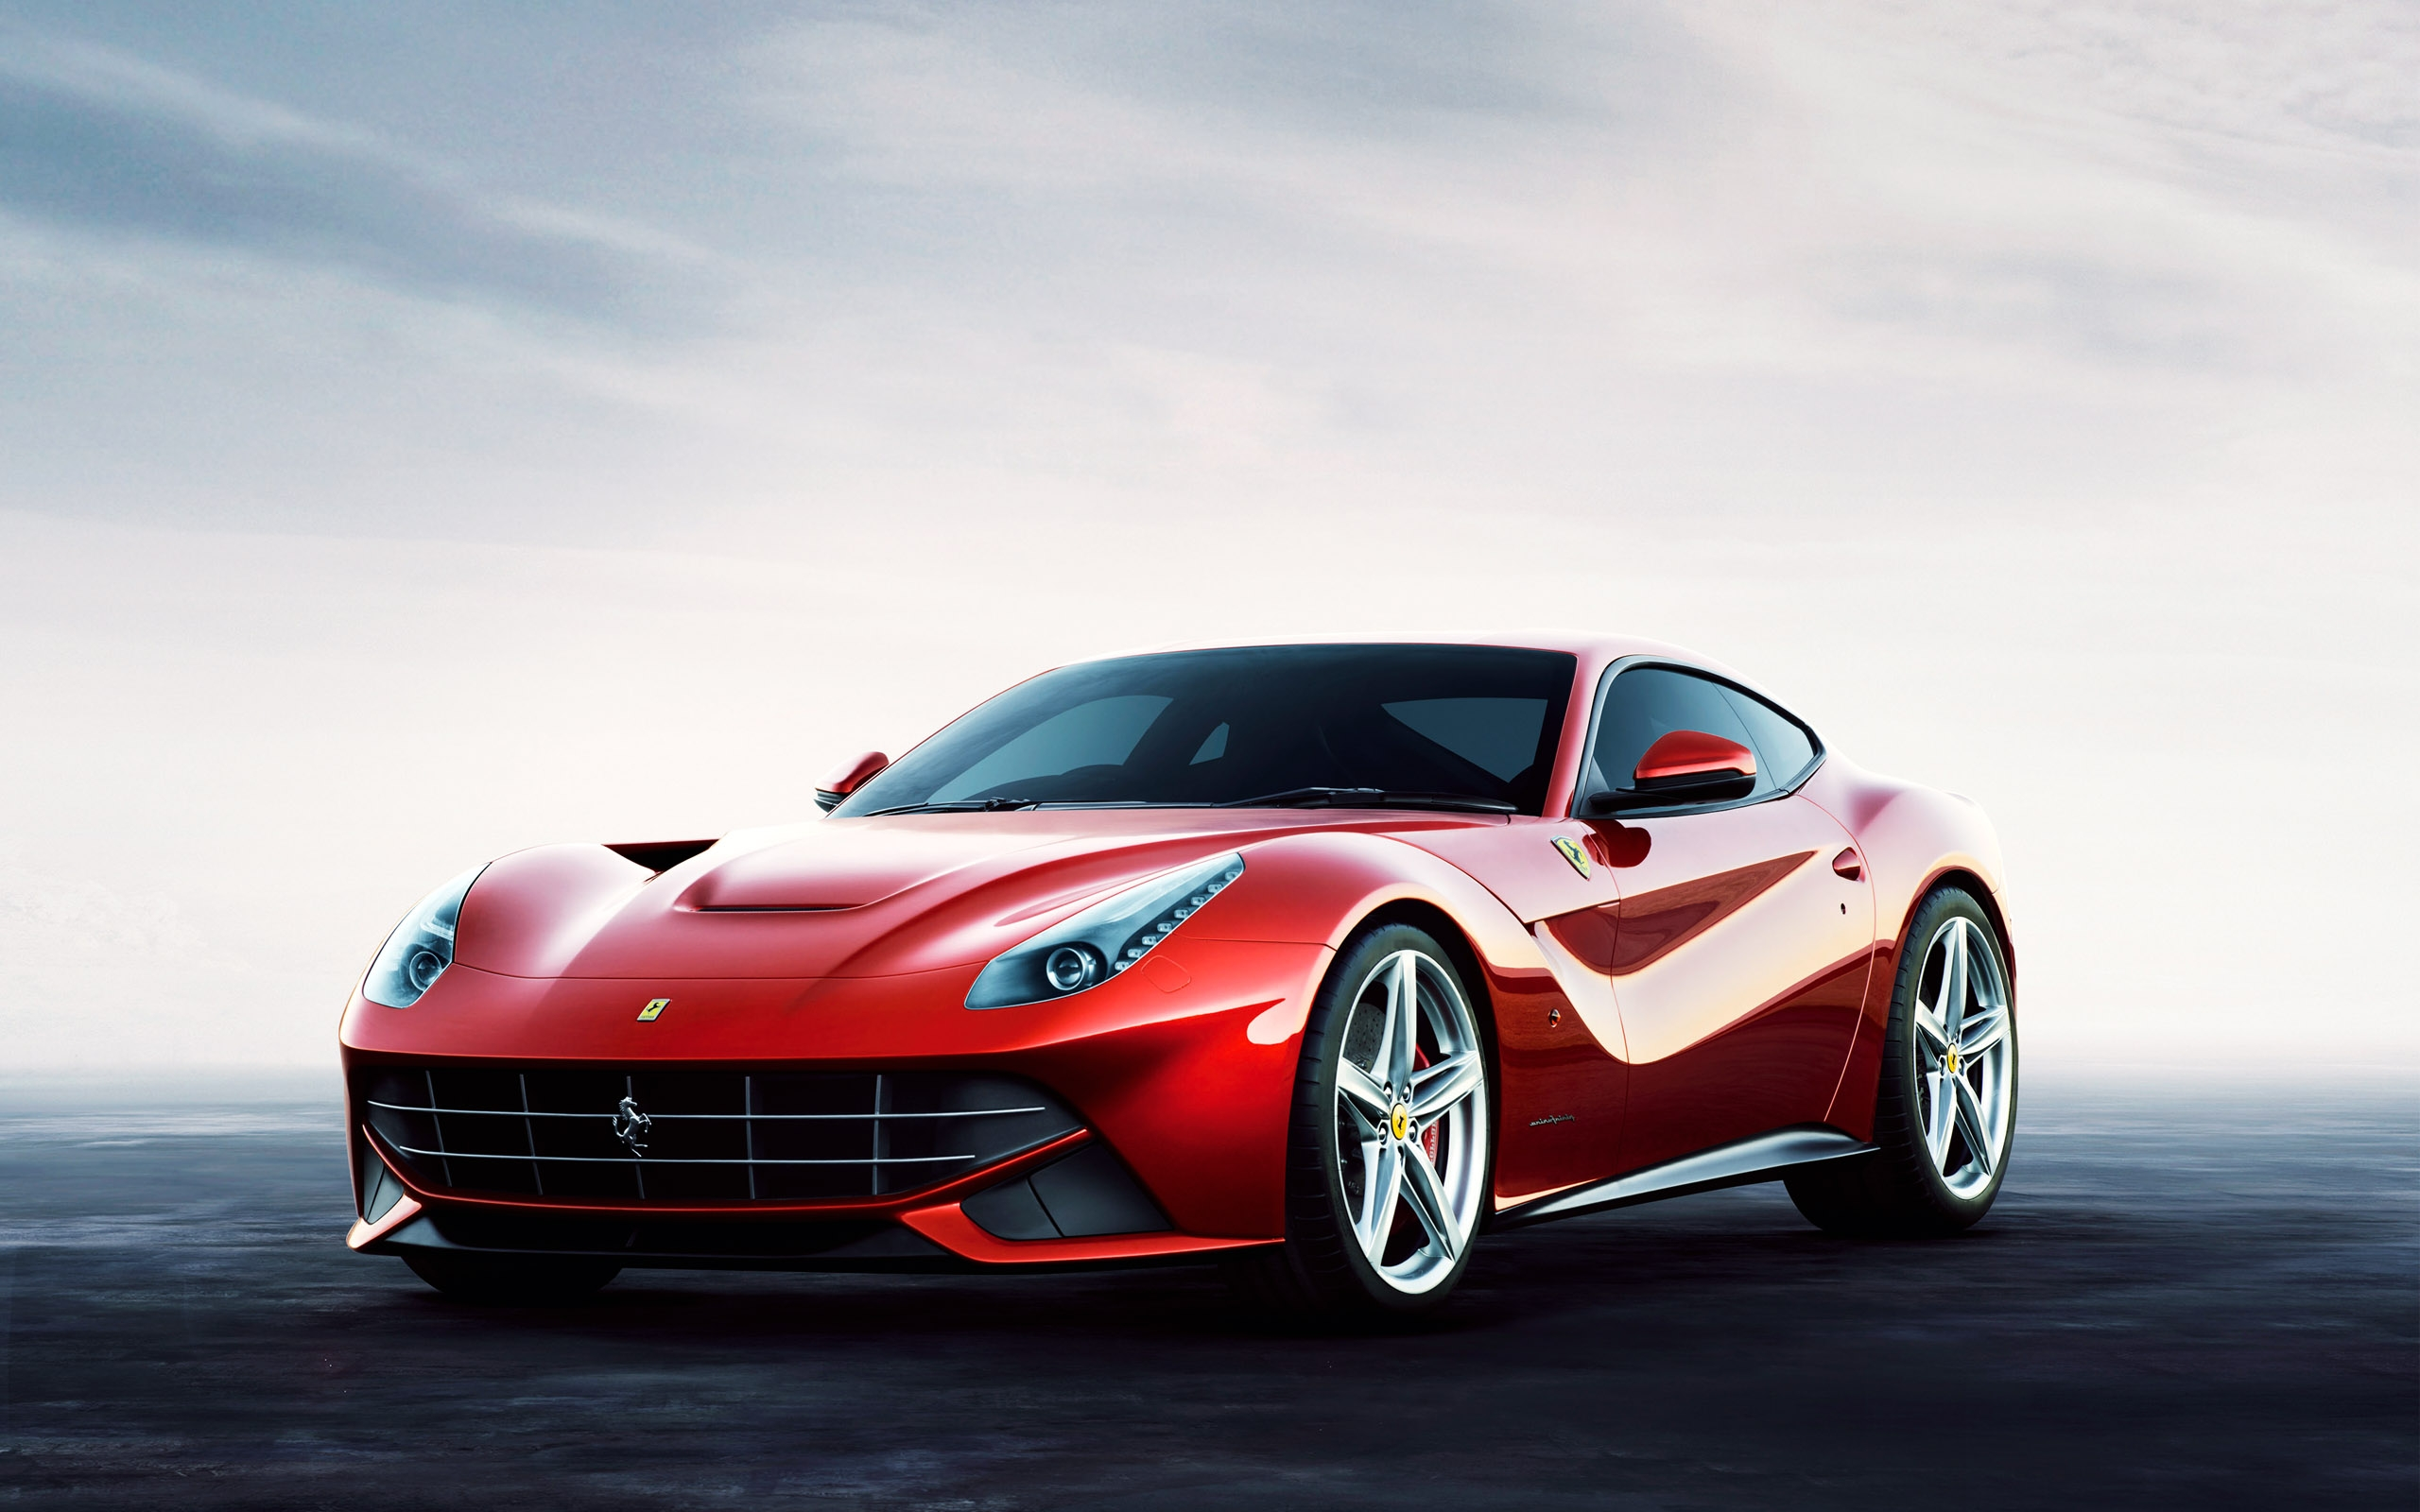 Pictures of ferrari f12 berlinetta #2